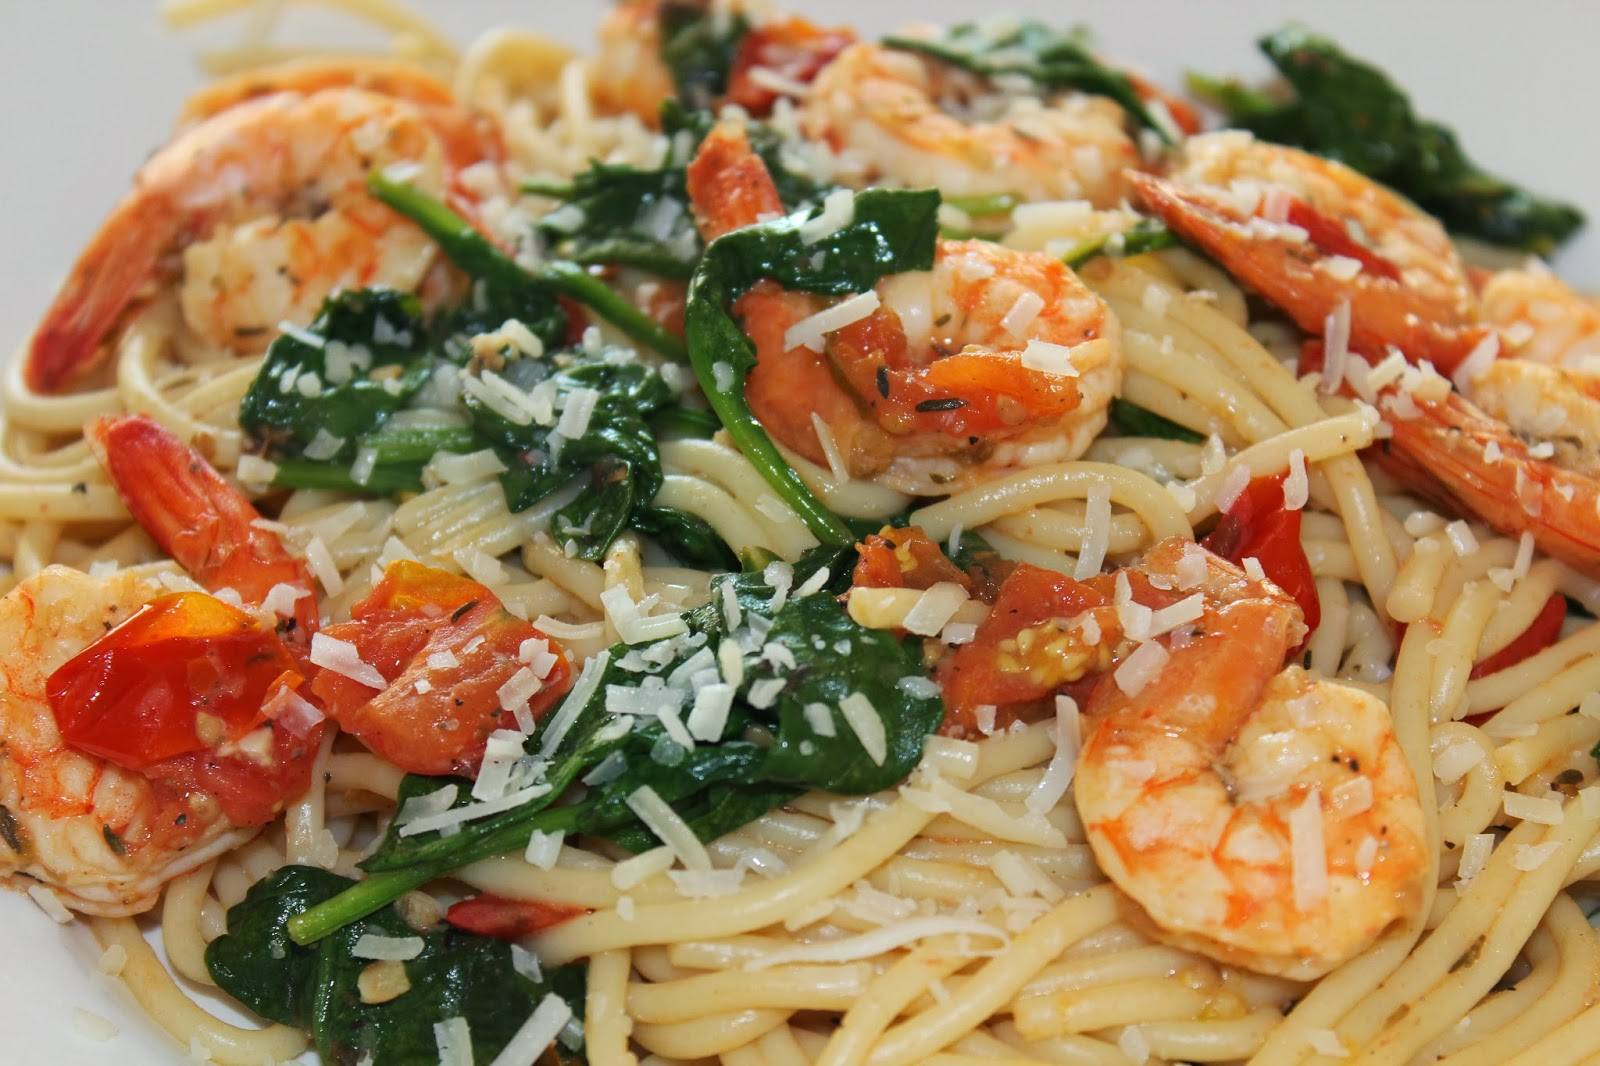 Delicious Edibles: Shrimp Pasta with Tomatoes, Lemon and Spinach